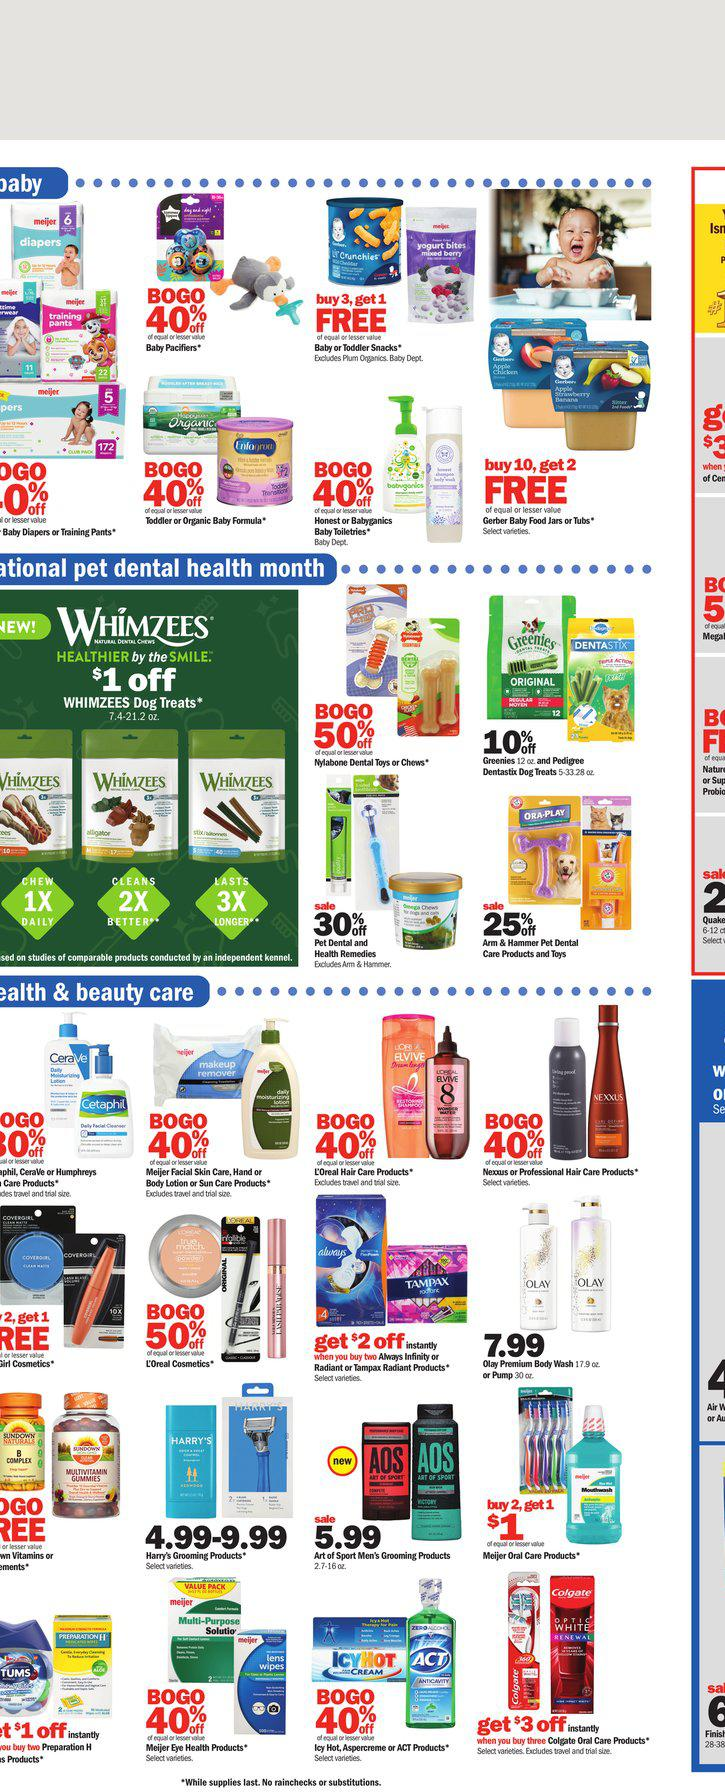 21.02.2021 Meijer ad 16. page